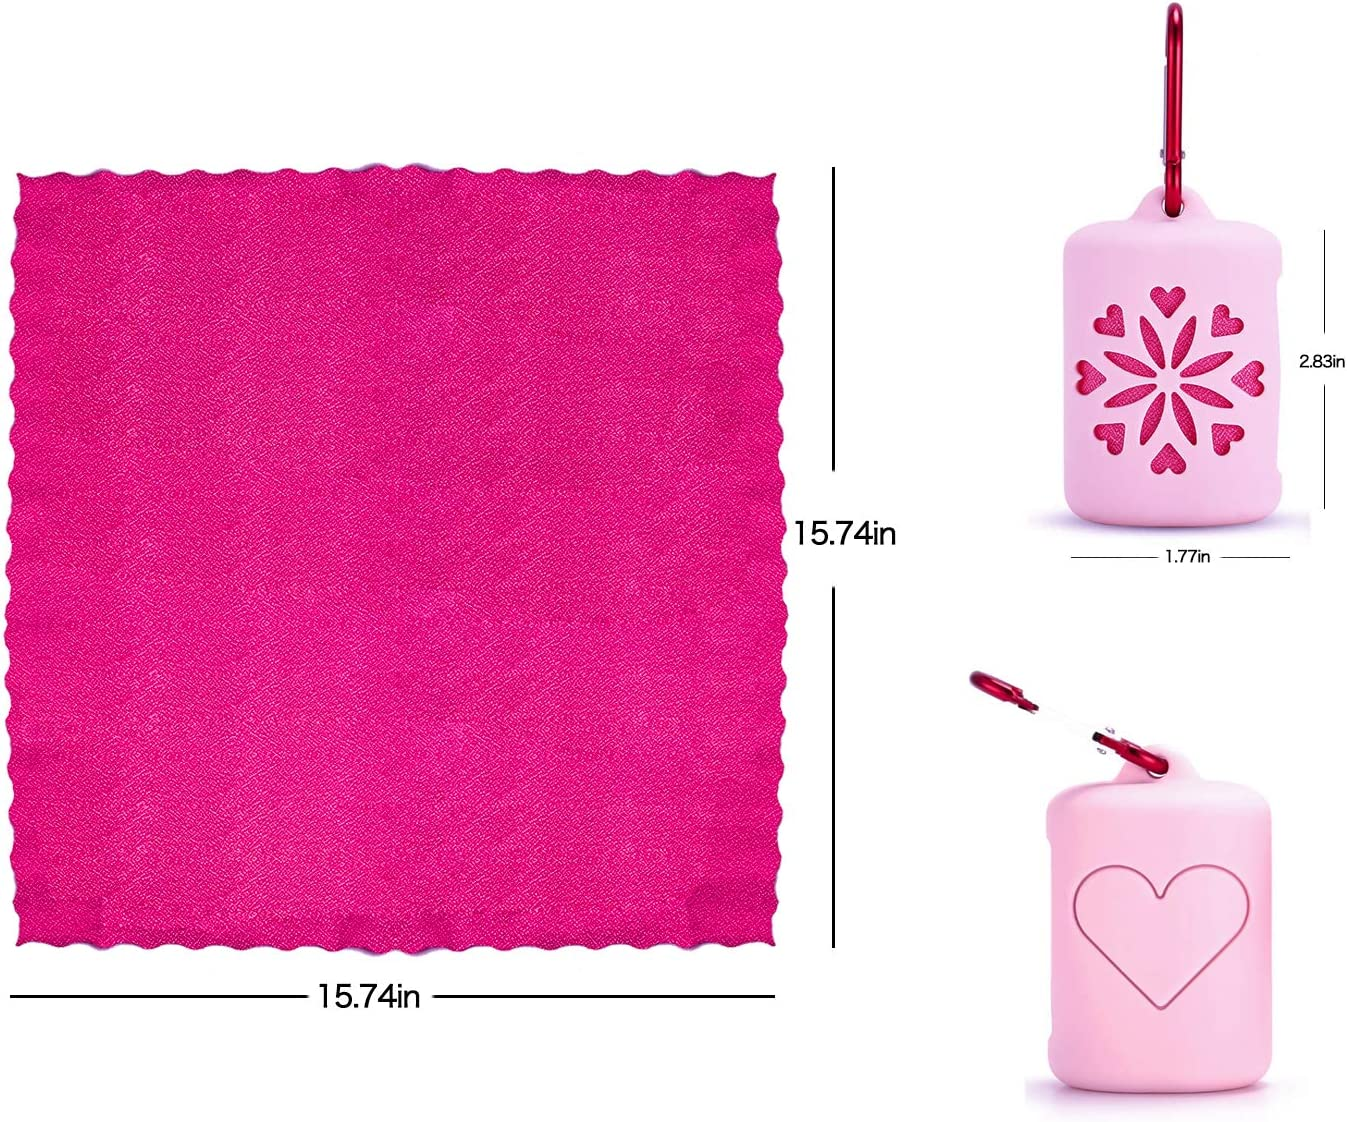 WEE Fast Dry Towel Absorbent Ultra Yoga Spa Etc Compact Microfiber Sports Travel Bath Towels Quick Dry Towel Mini Lightweight for Camping Beach